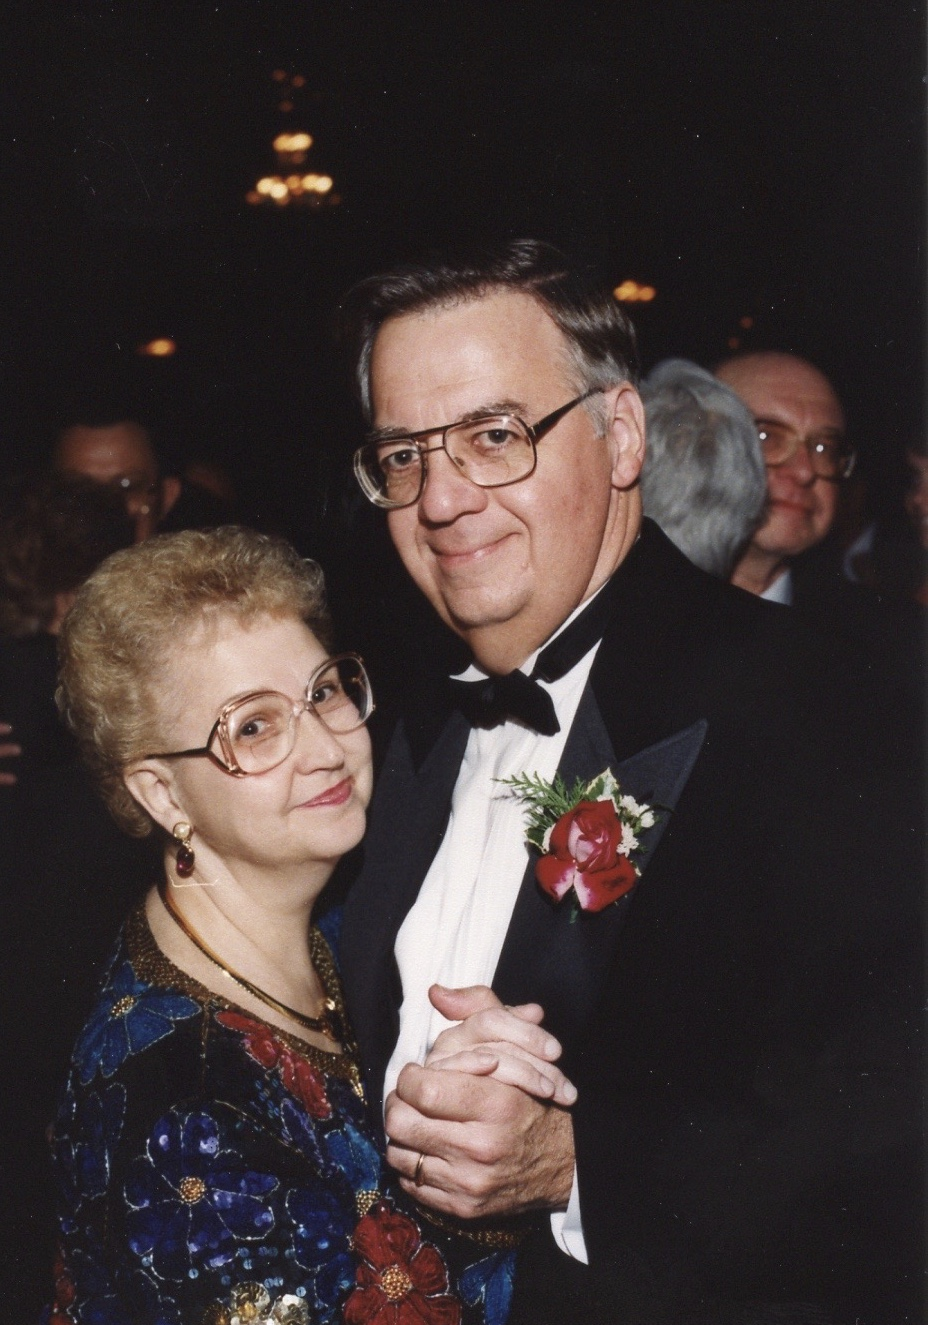 Mom and dad at my wedding, 12-31-97